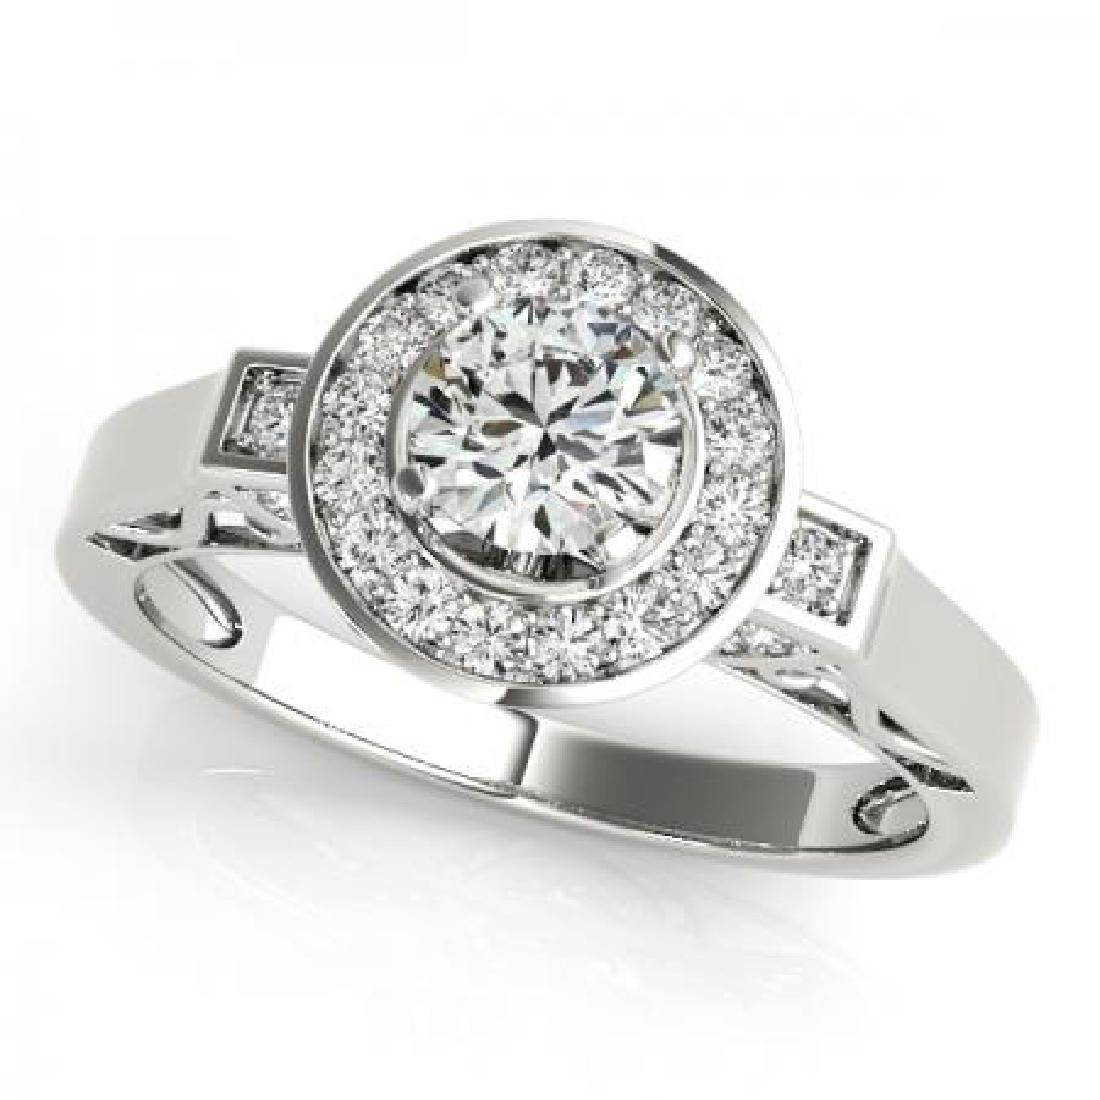 CERTIFIED PLATINUM 0.97 CT G-H/VS-SI1 DIAMOND HALO ENGA